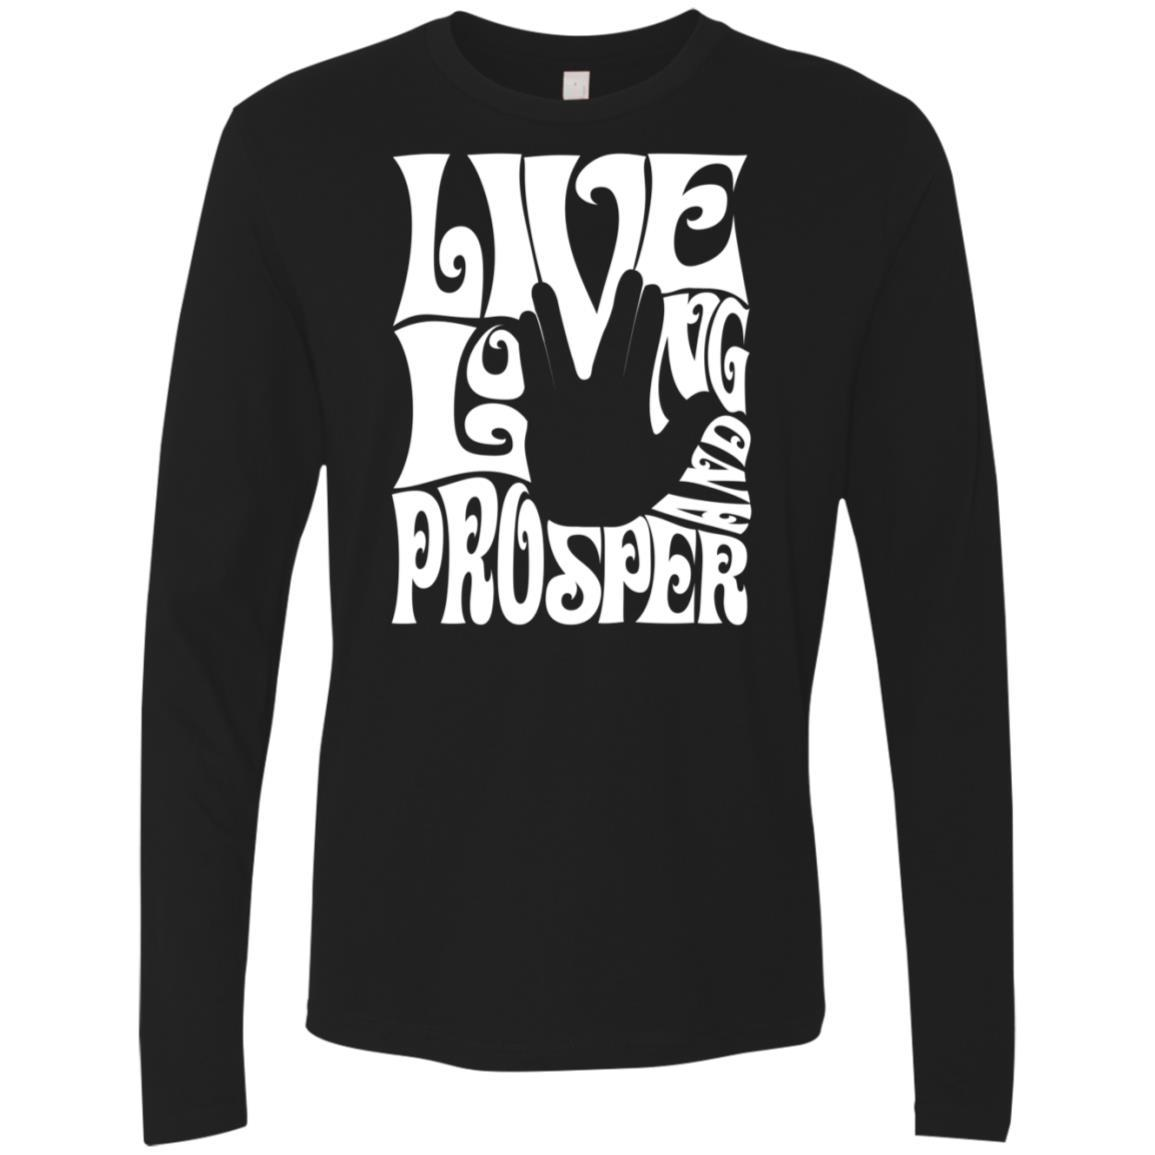 Prosper Retro Premium Long Sleeve